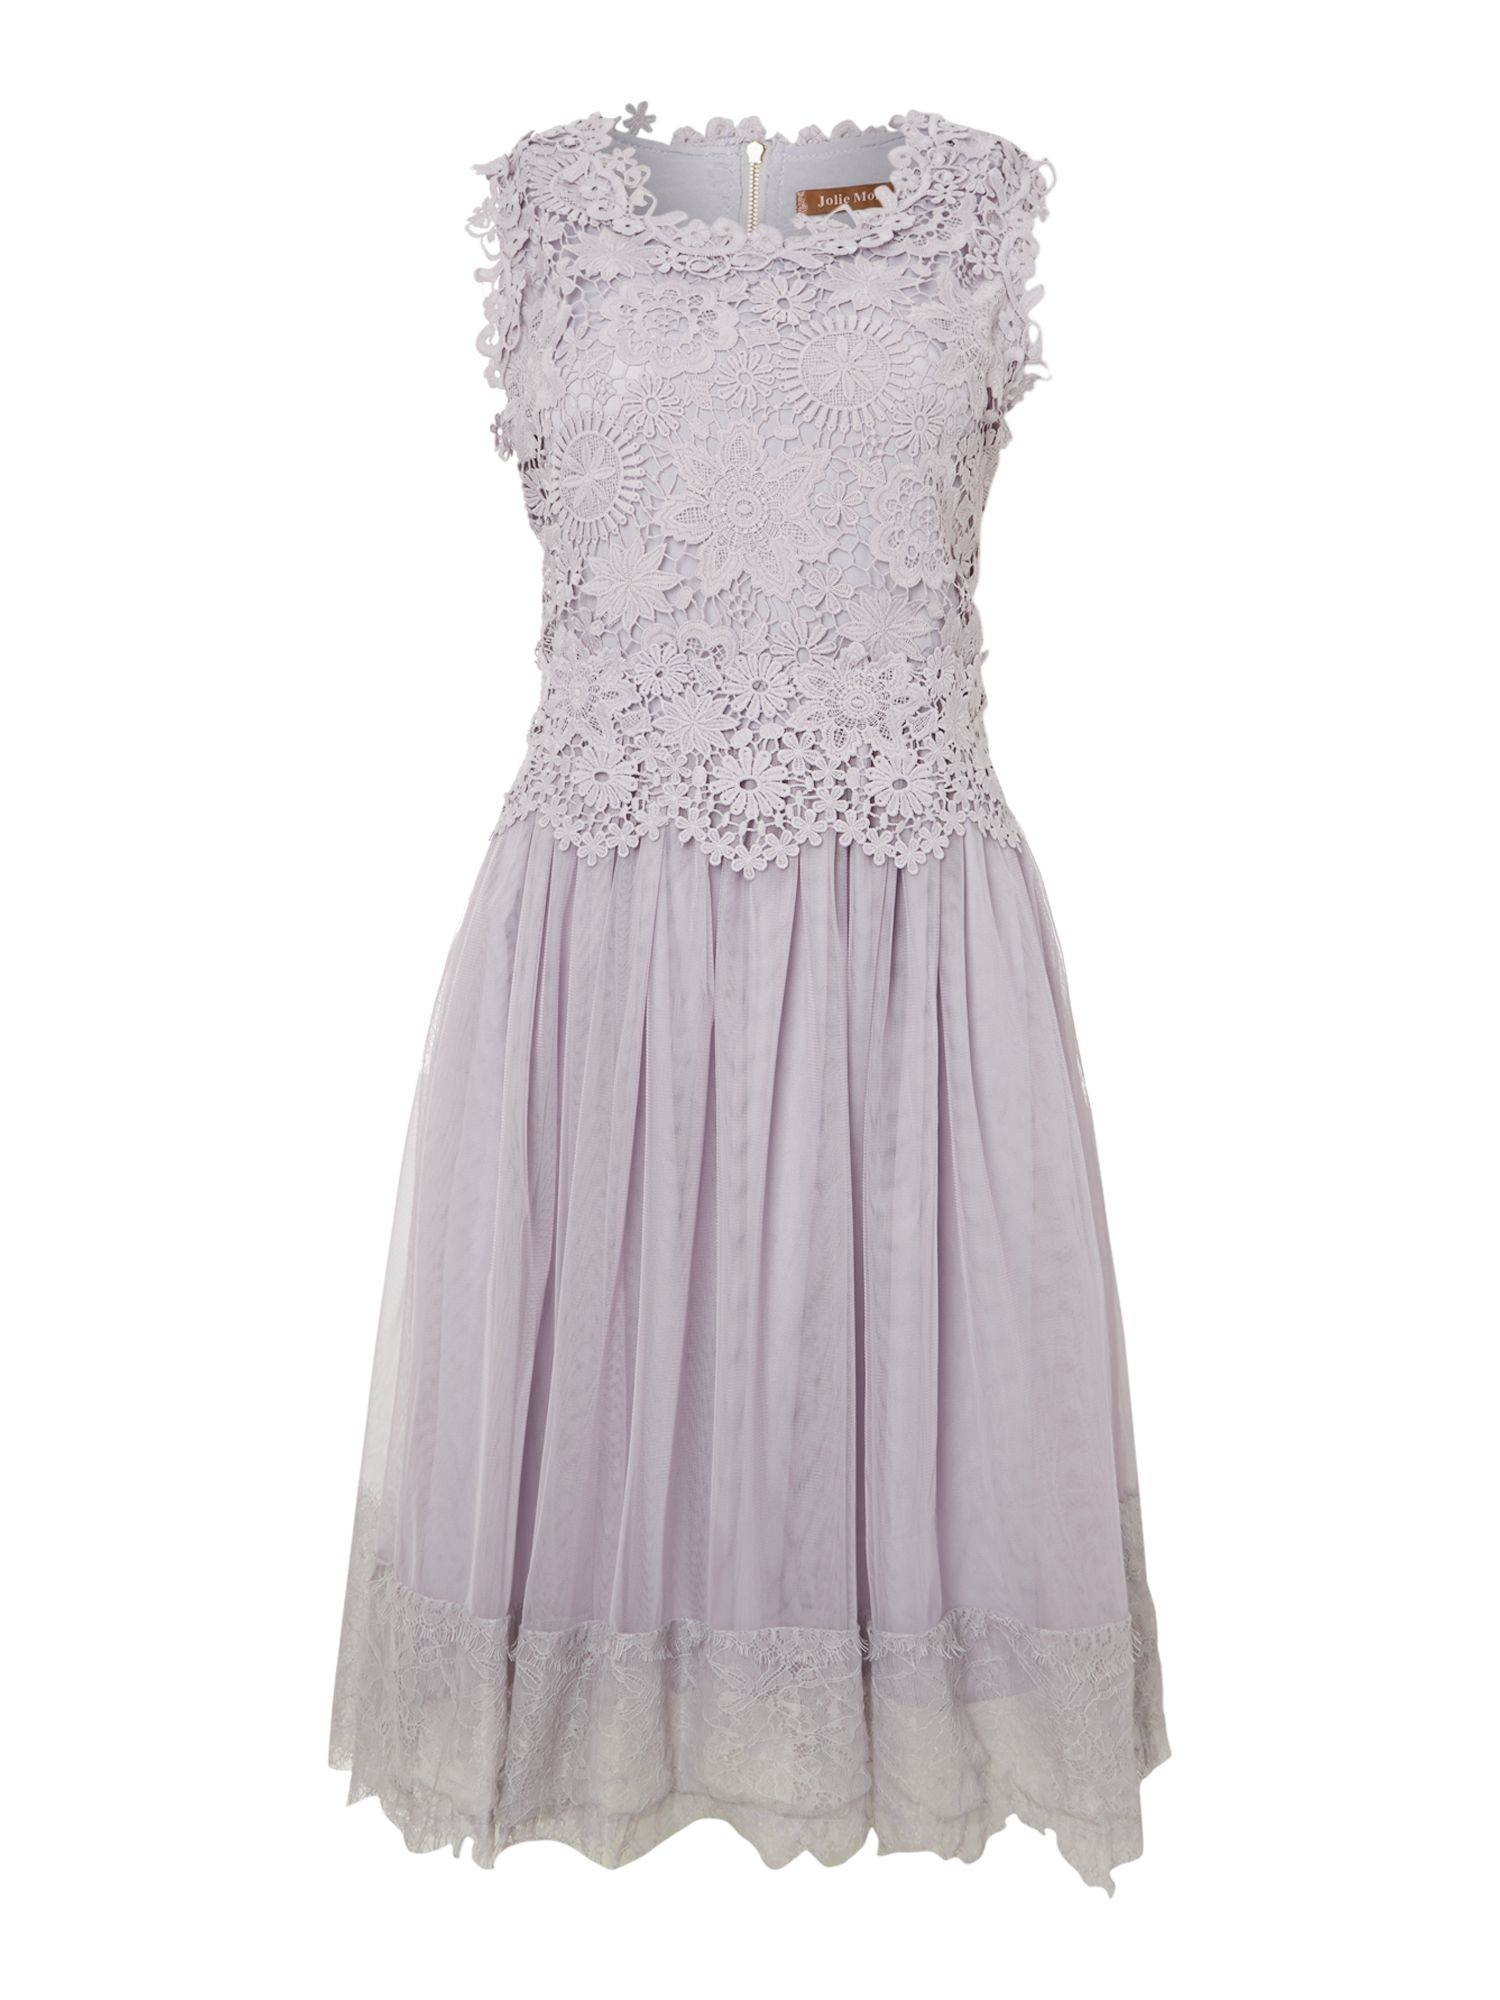 Crochet lace overlay prom dress